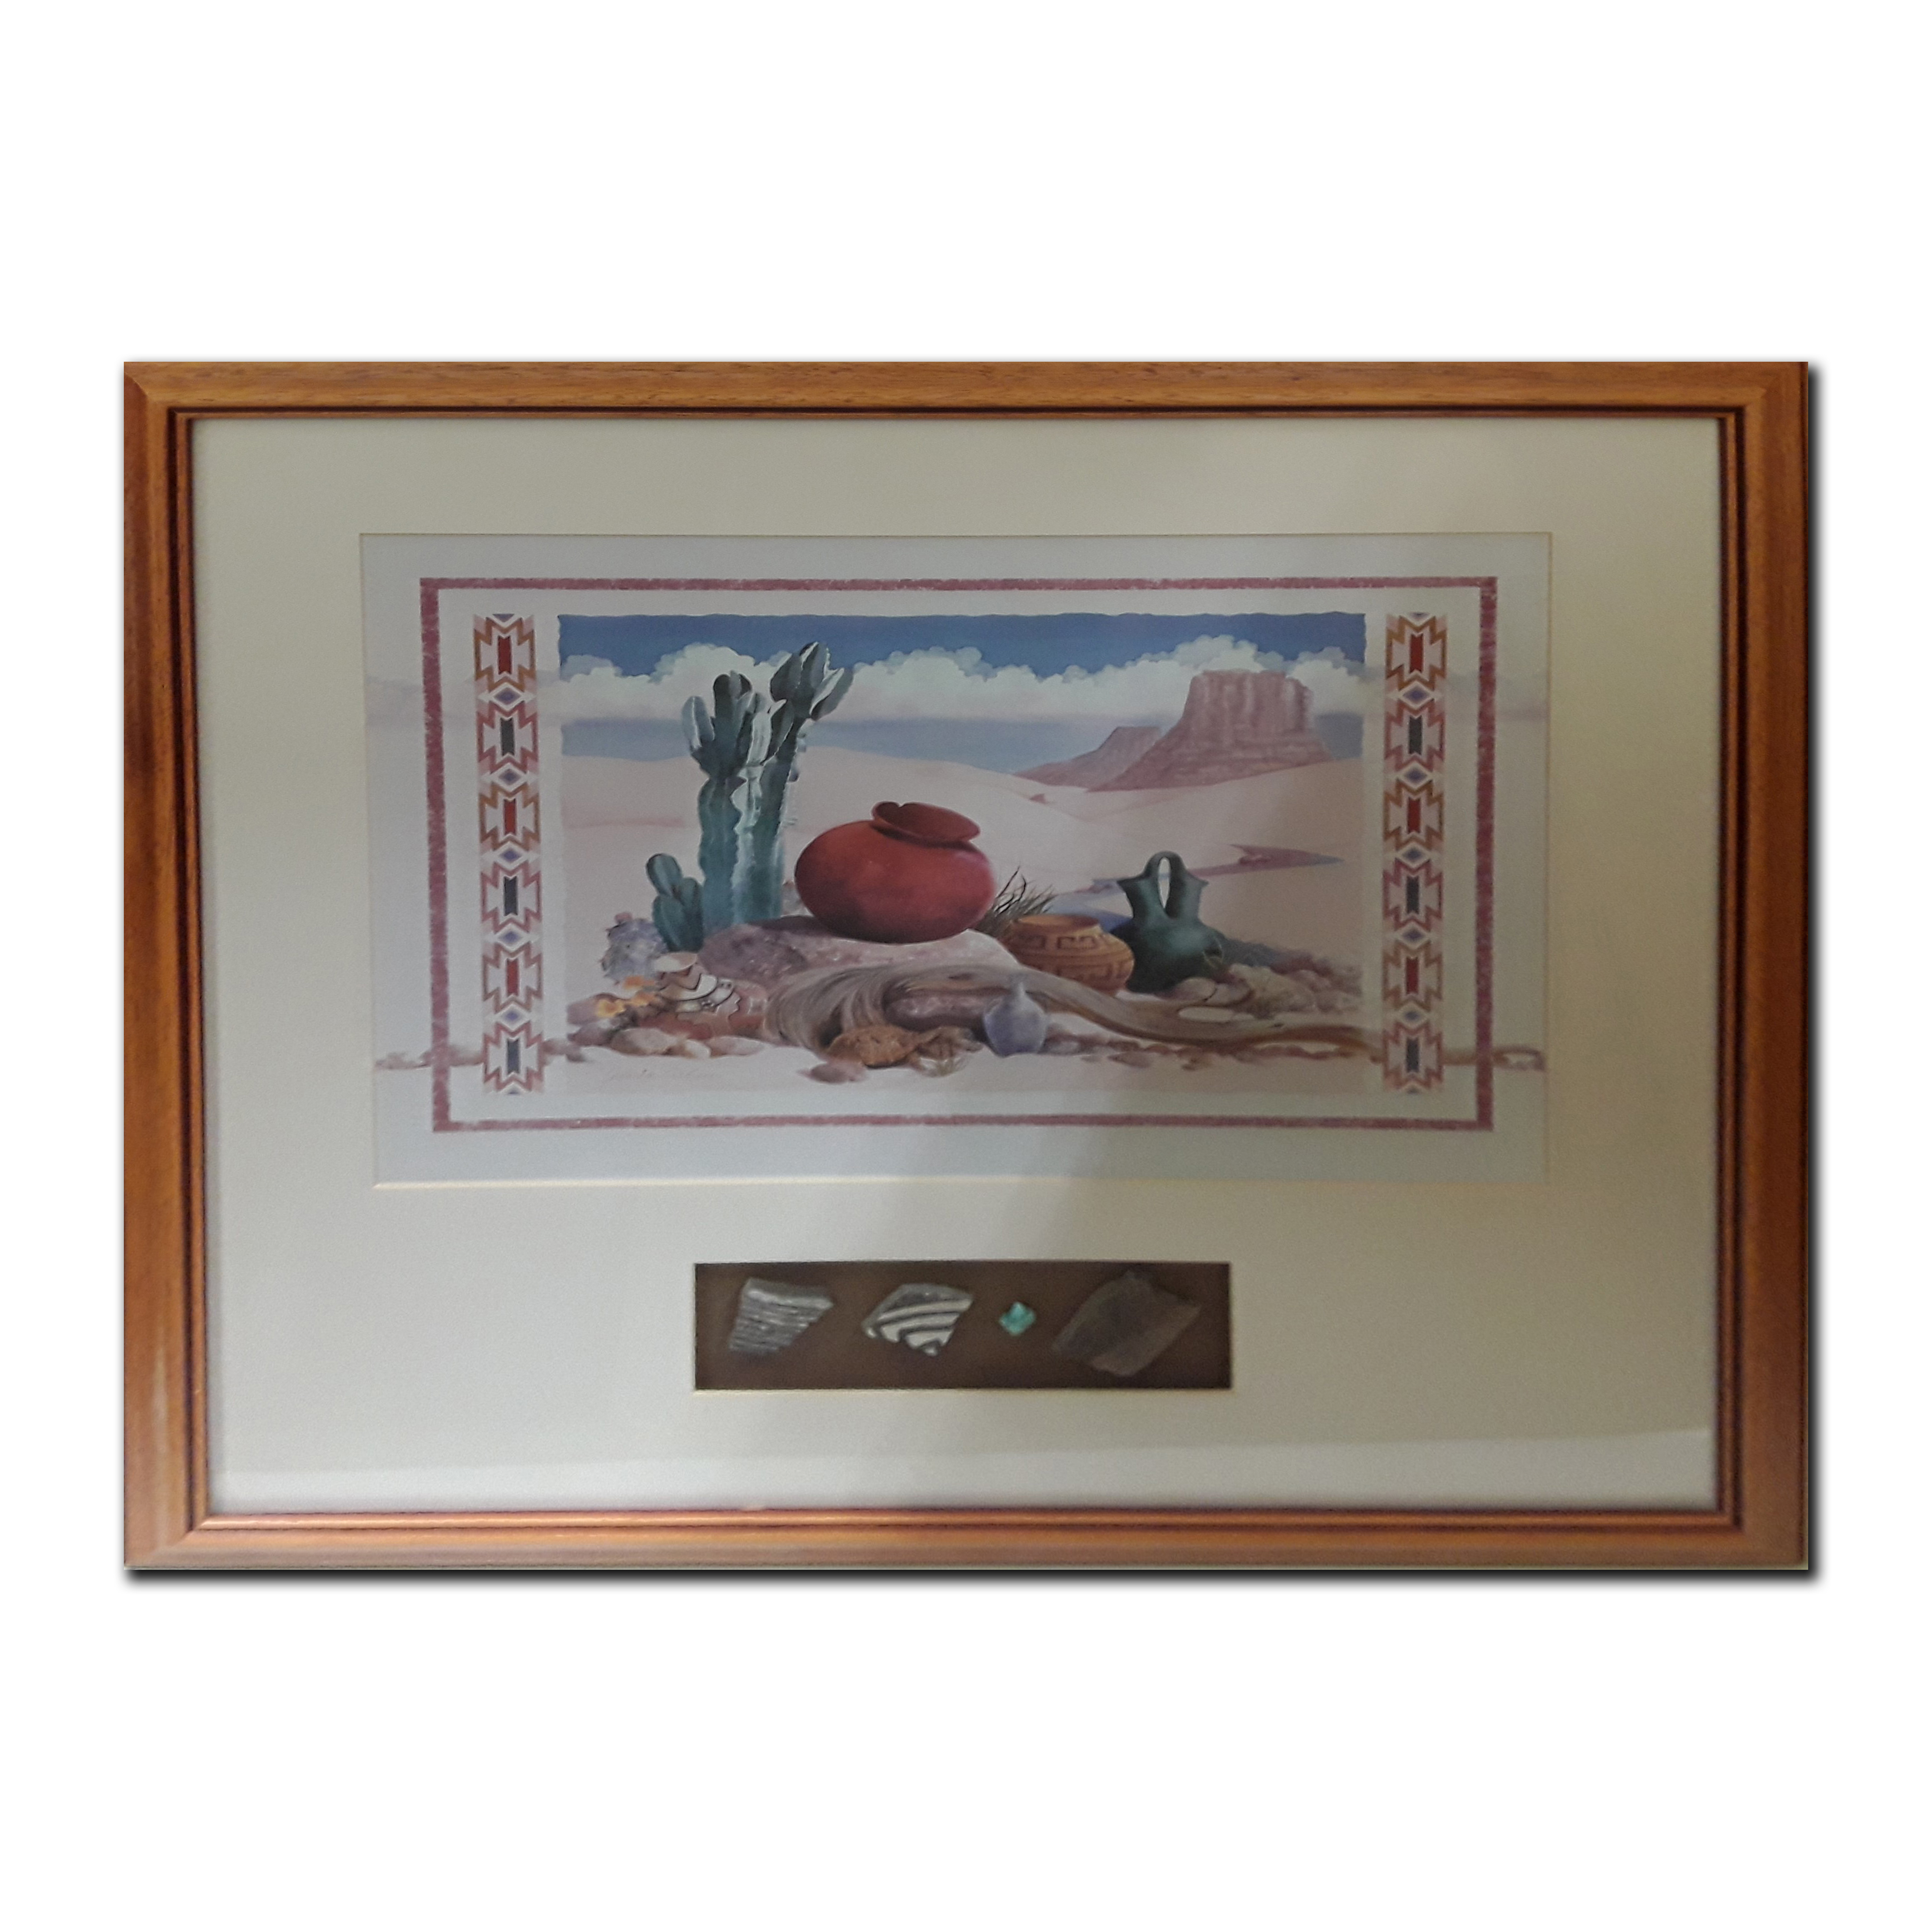 Native American Themed Framed Print With 4 Accompanying Native American Stone Artifacts (Art and Artifacts)